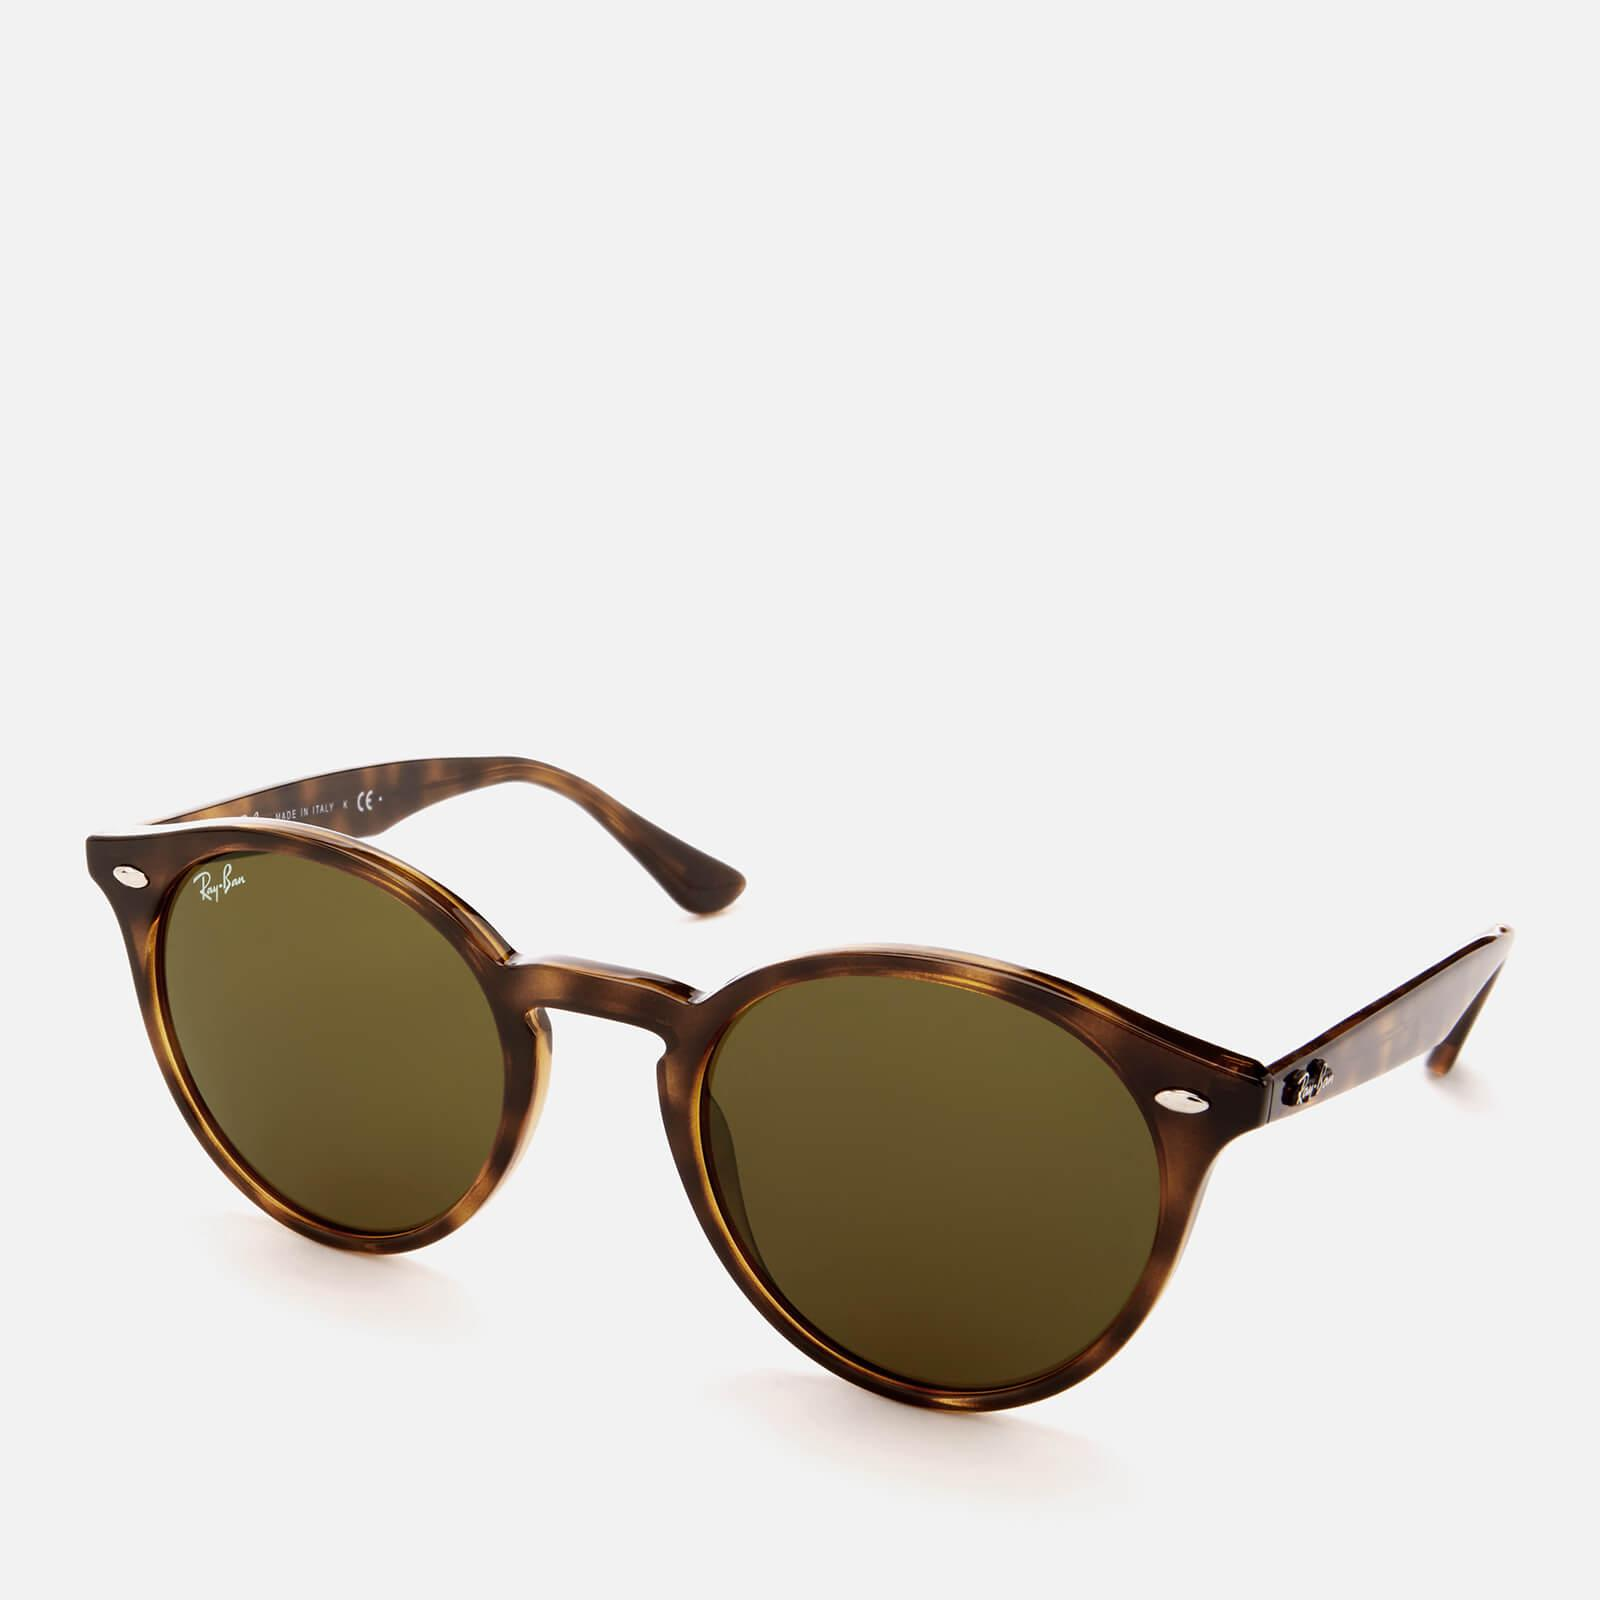 7884189608b ... tortoise polarized blue green gradient lens 52mm 3d6f2 a4ee9  official ray  ban multicolor round frame sunglasses lyst. view fullscreen a4e63 7d8cd